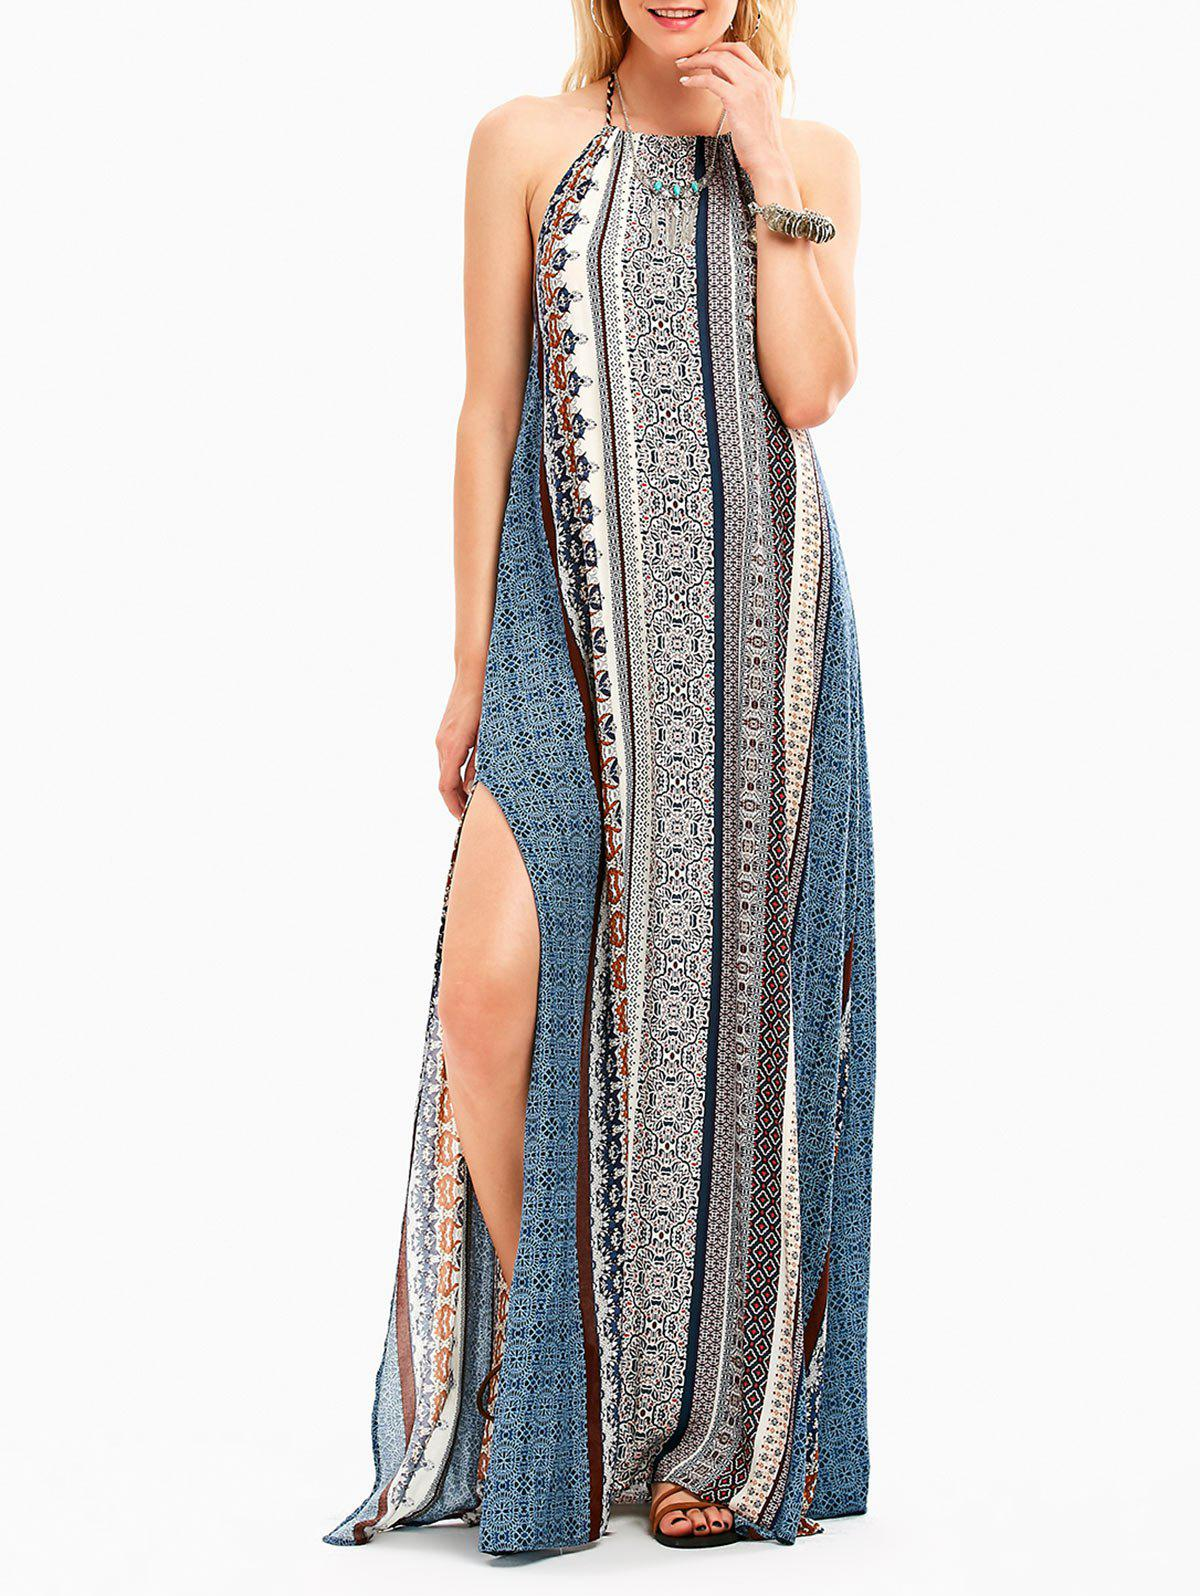 Bohemia Halter High Slit Backless Maxi Dress - COLORMIX XL